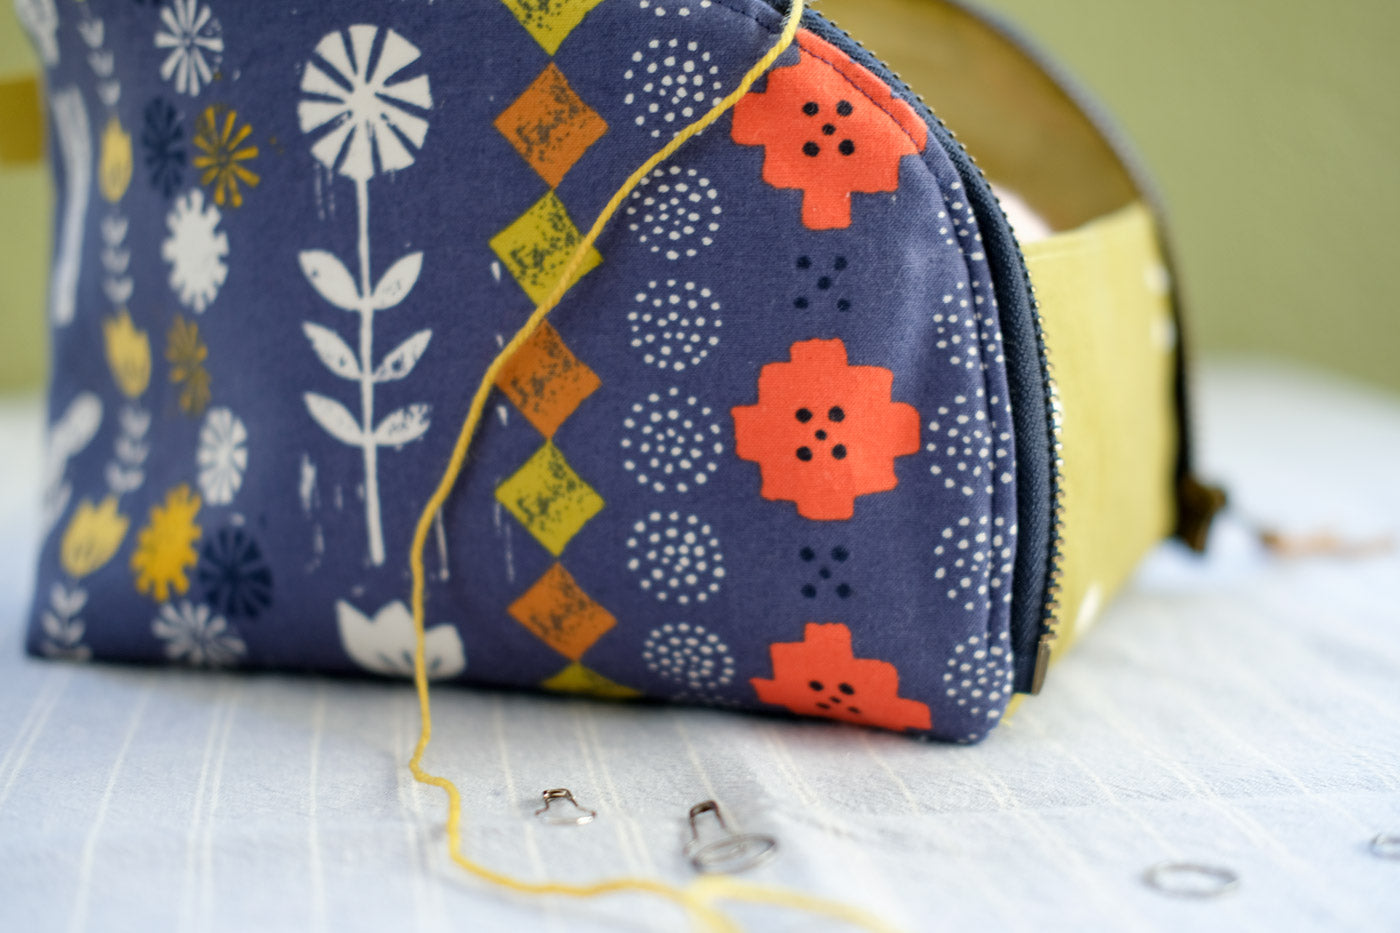 Alexia Abegg's Sunshine fabric made up in an Open-Out-Box-Pouch